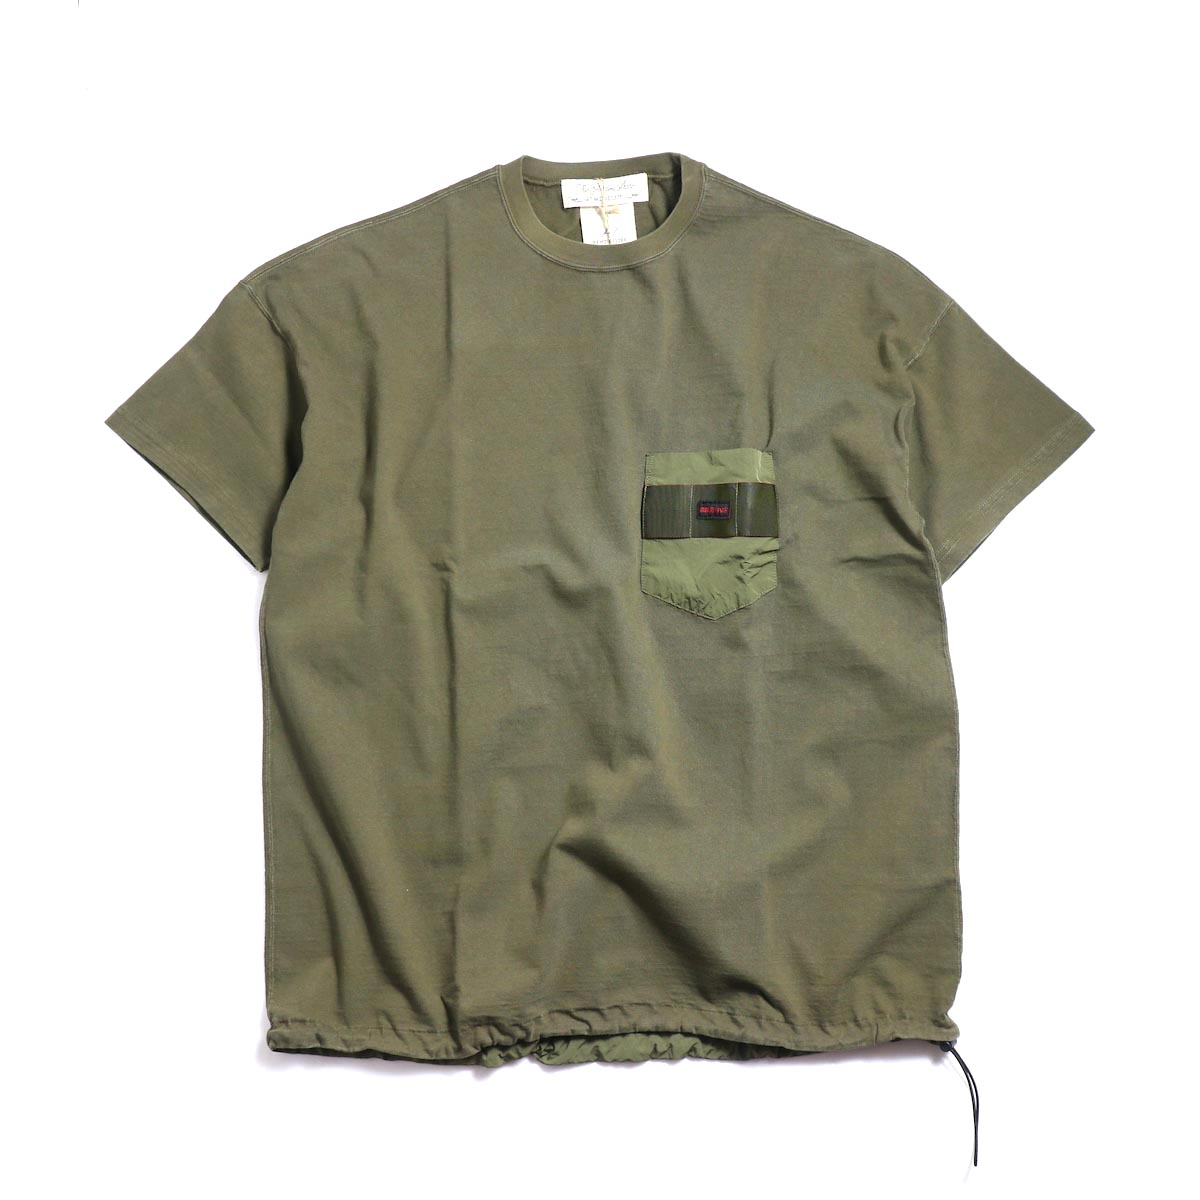 REMI RELIEF × BRIEFING / S/S Pocket Tee -Khaki